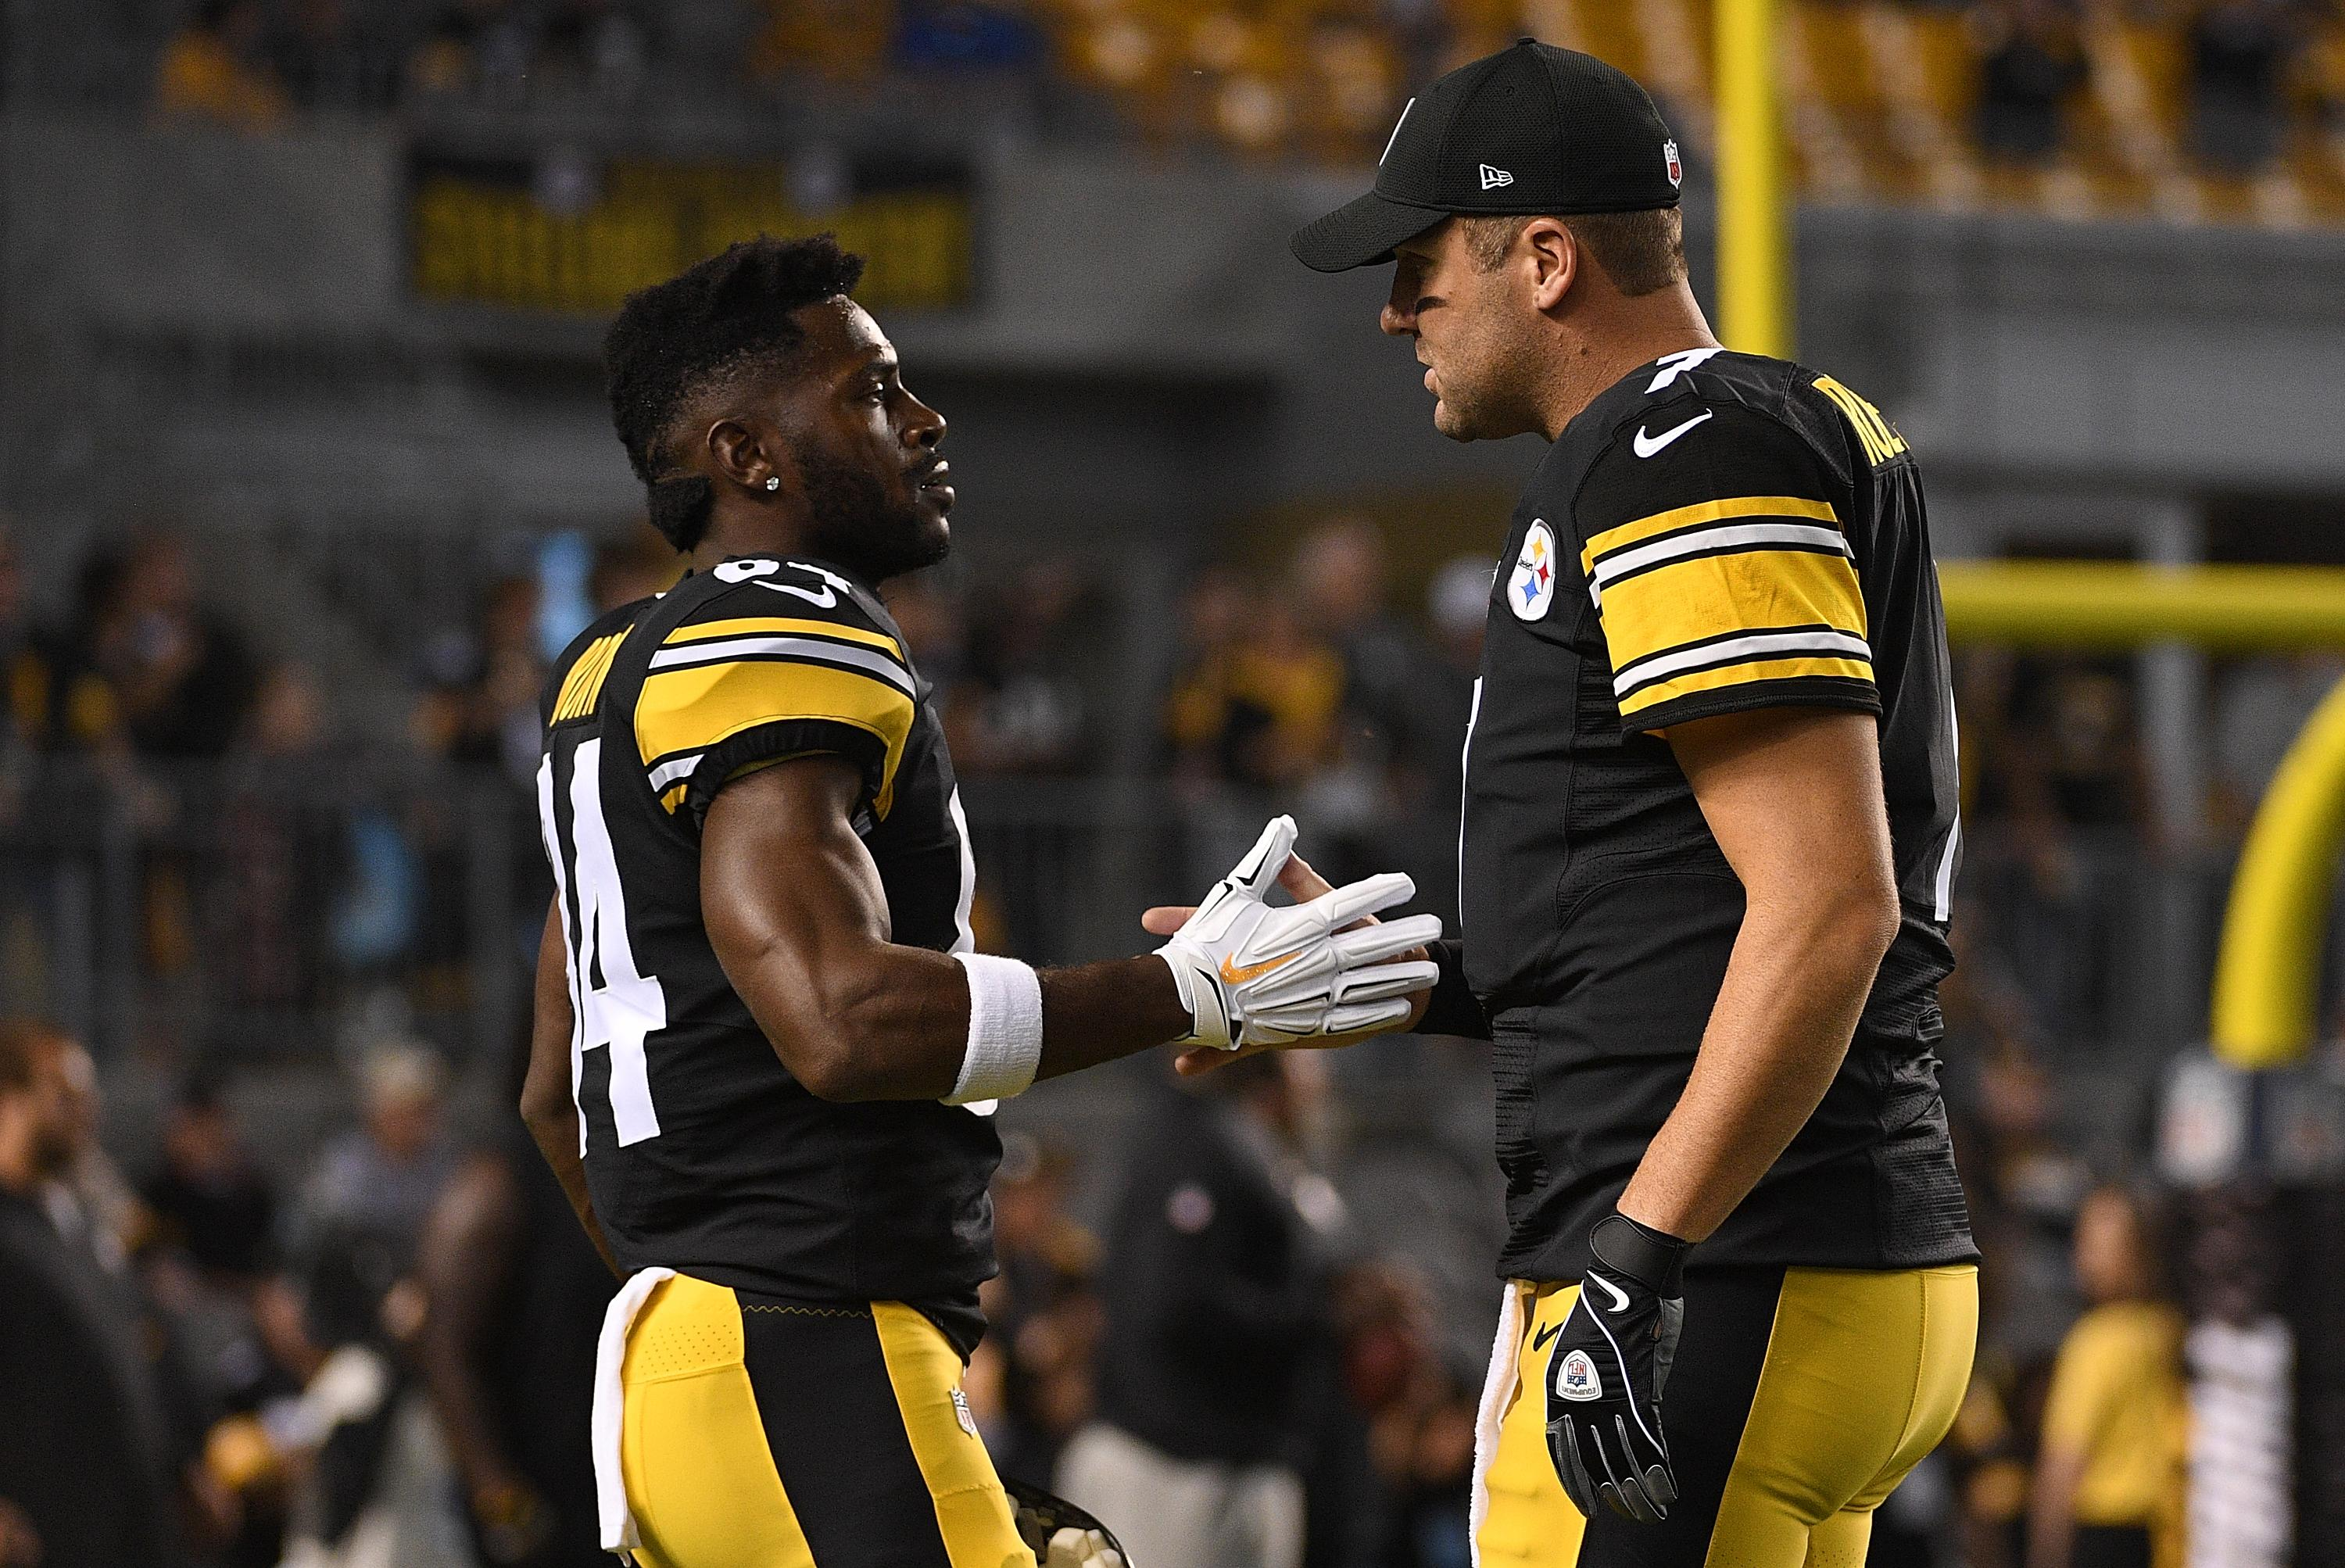 Antonio Brown Skipped Practice Most of Last Week After Dispute With Teammate